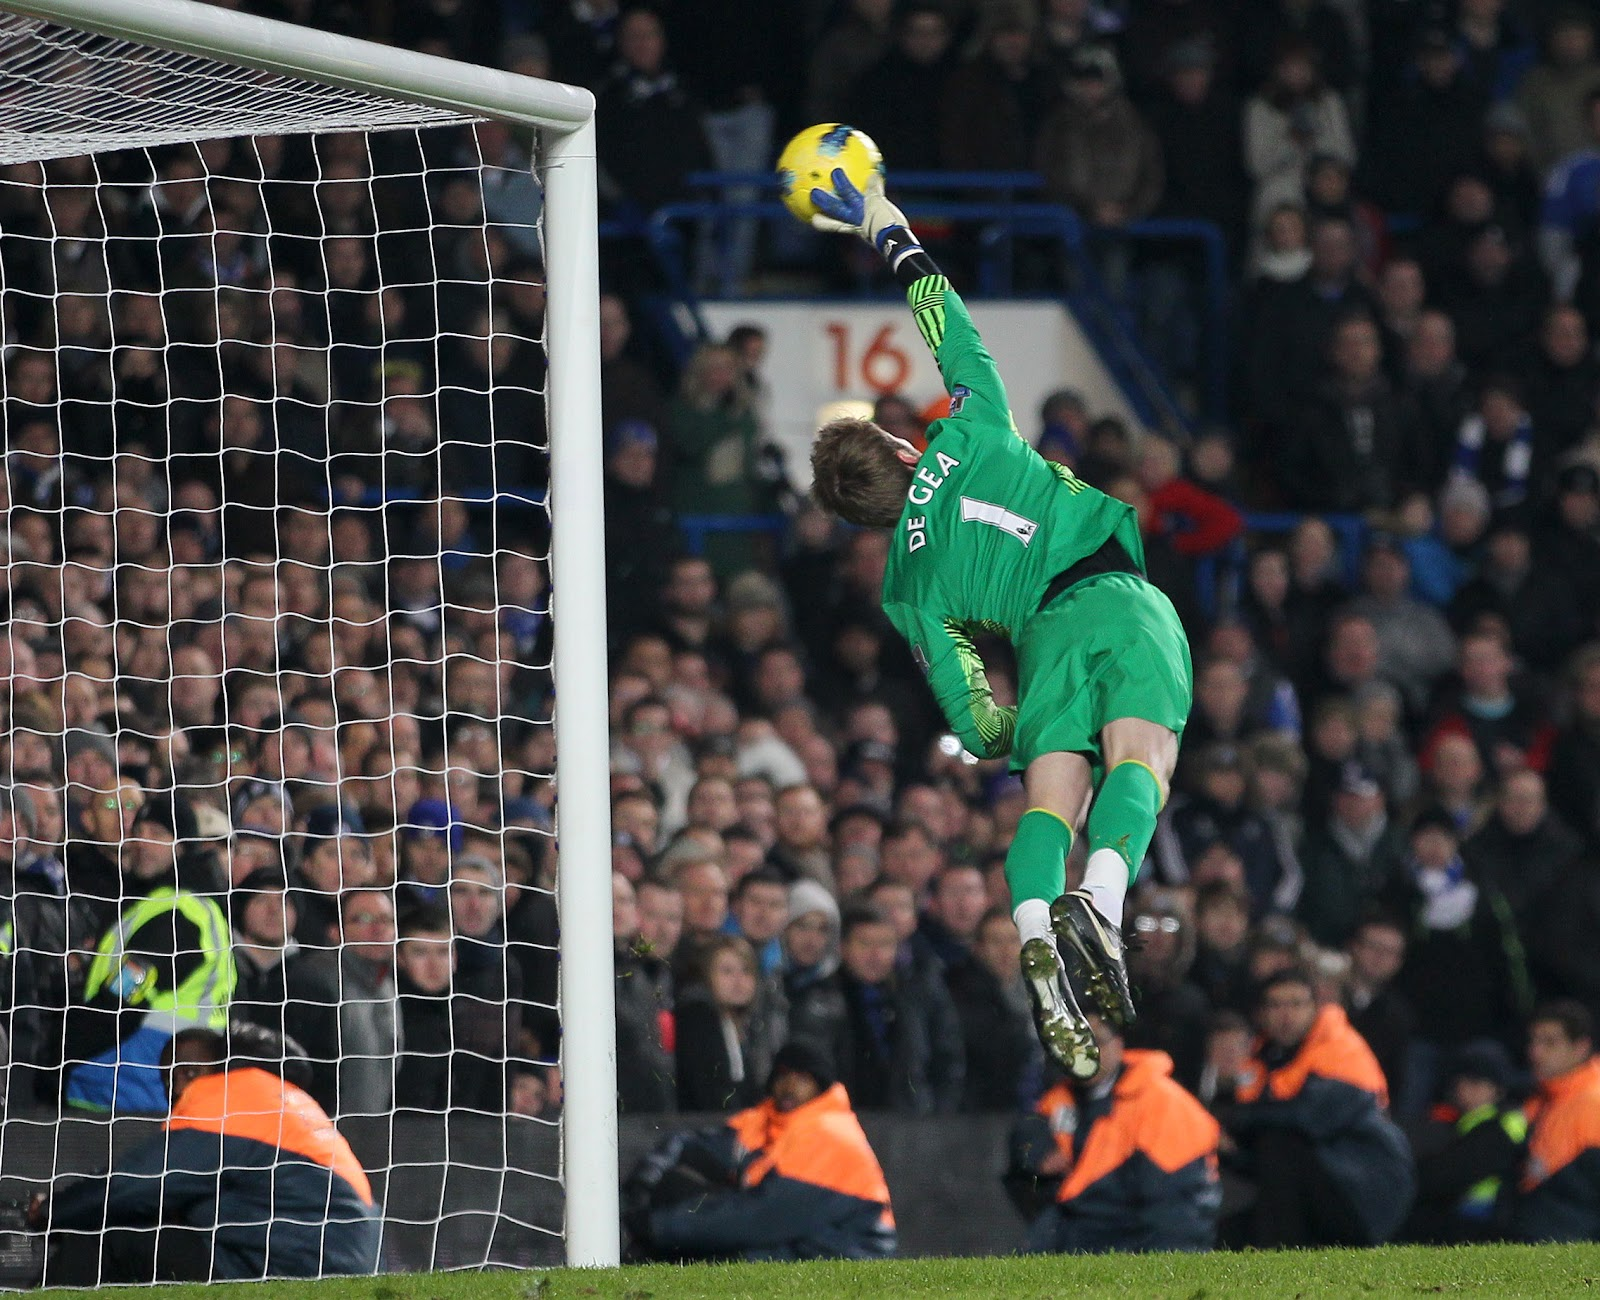 De Gea - The Flying Spaniard!